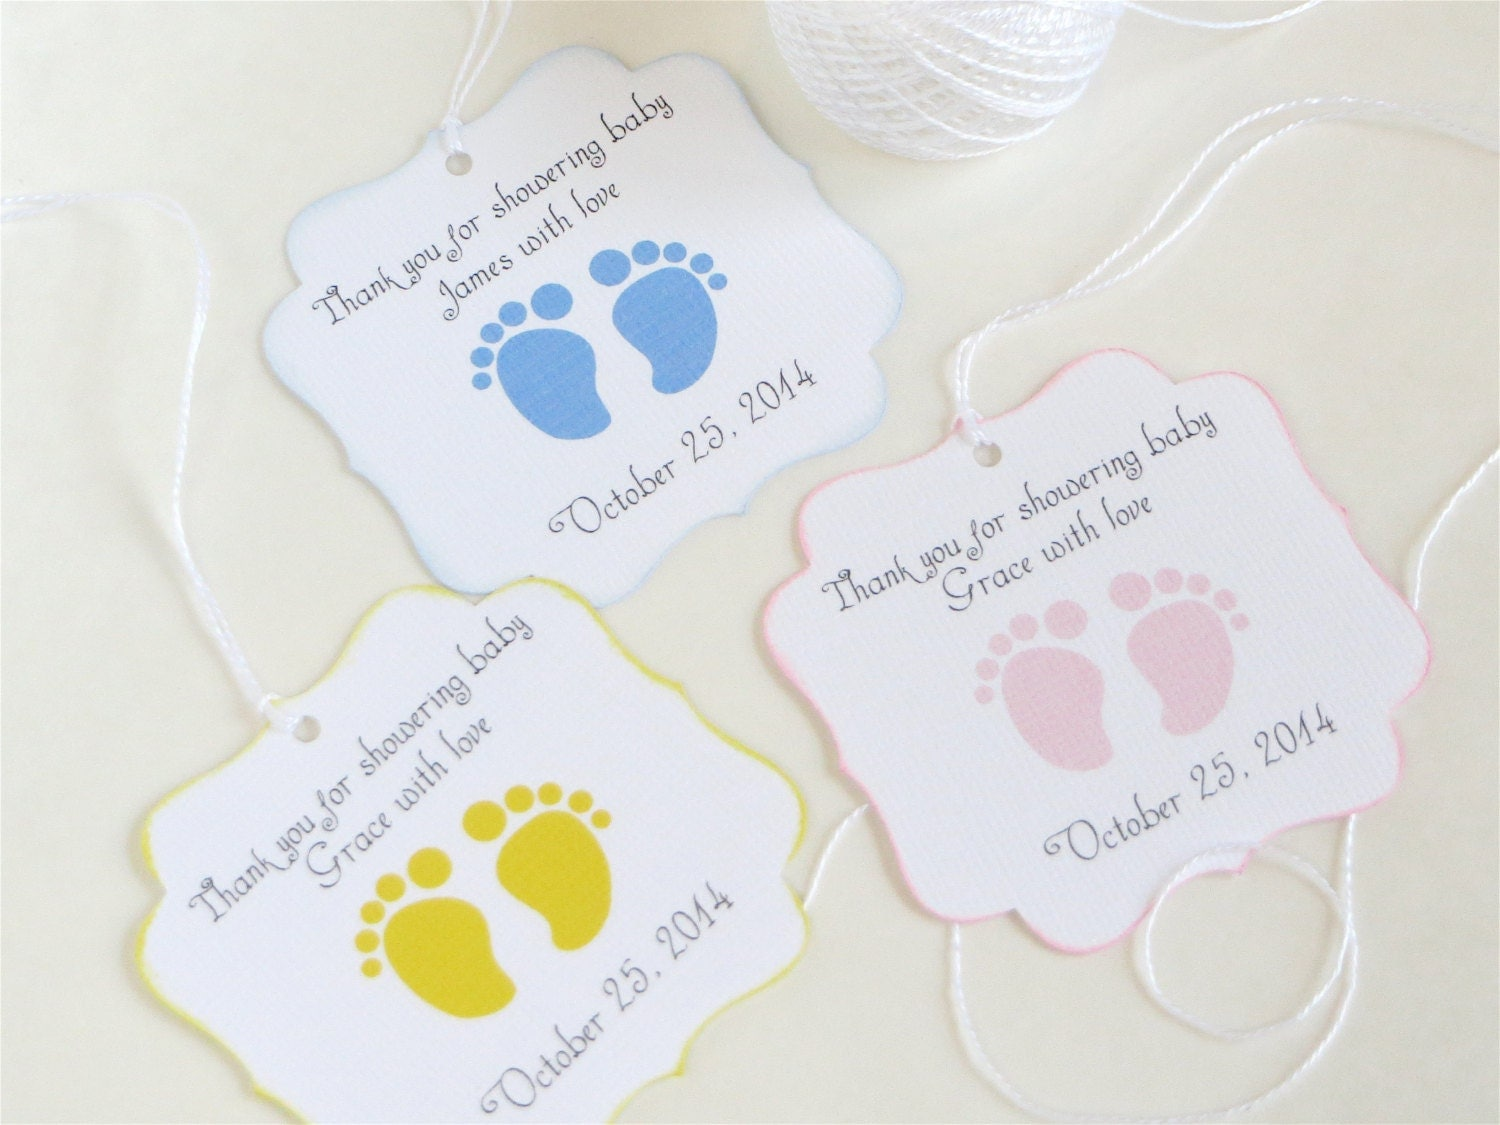 It's just an image of Crazy Baby Gift Tags